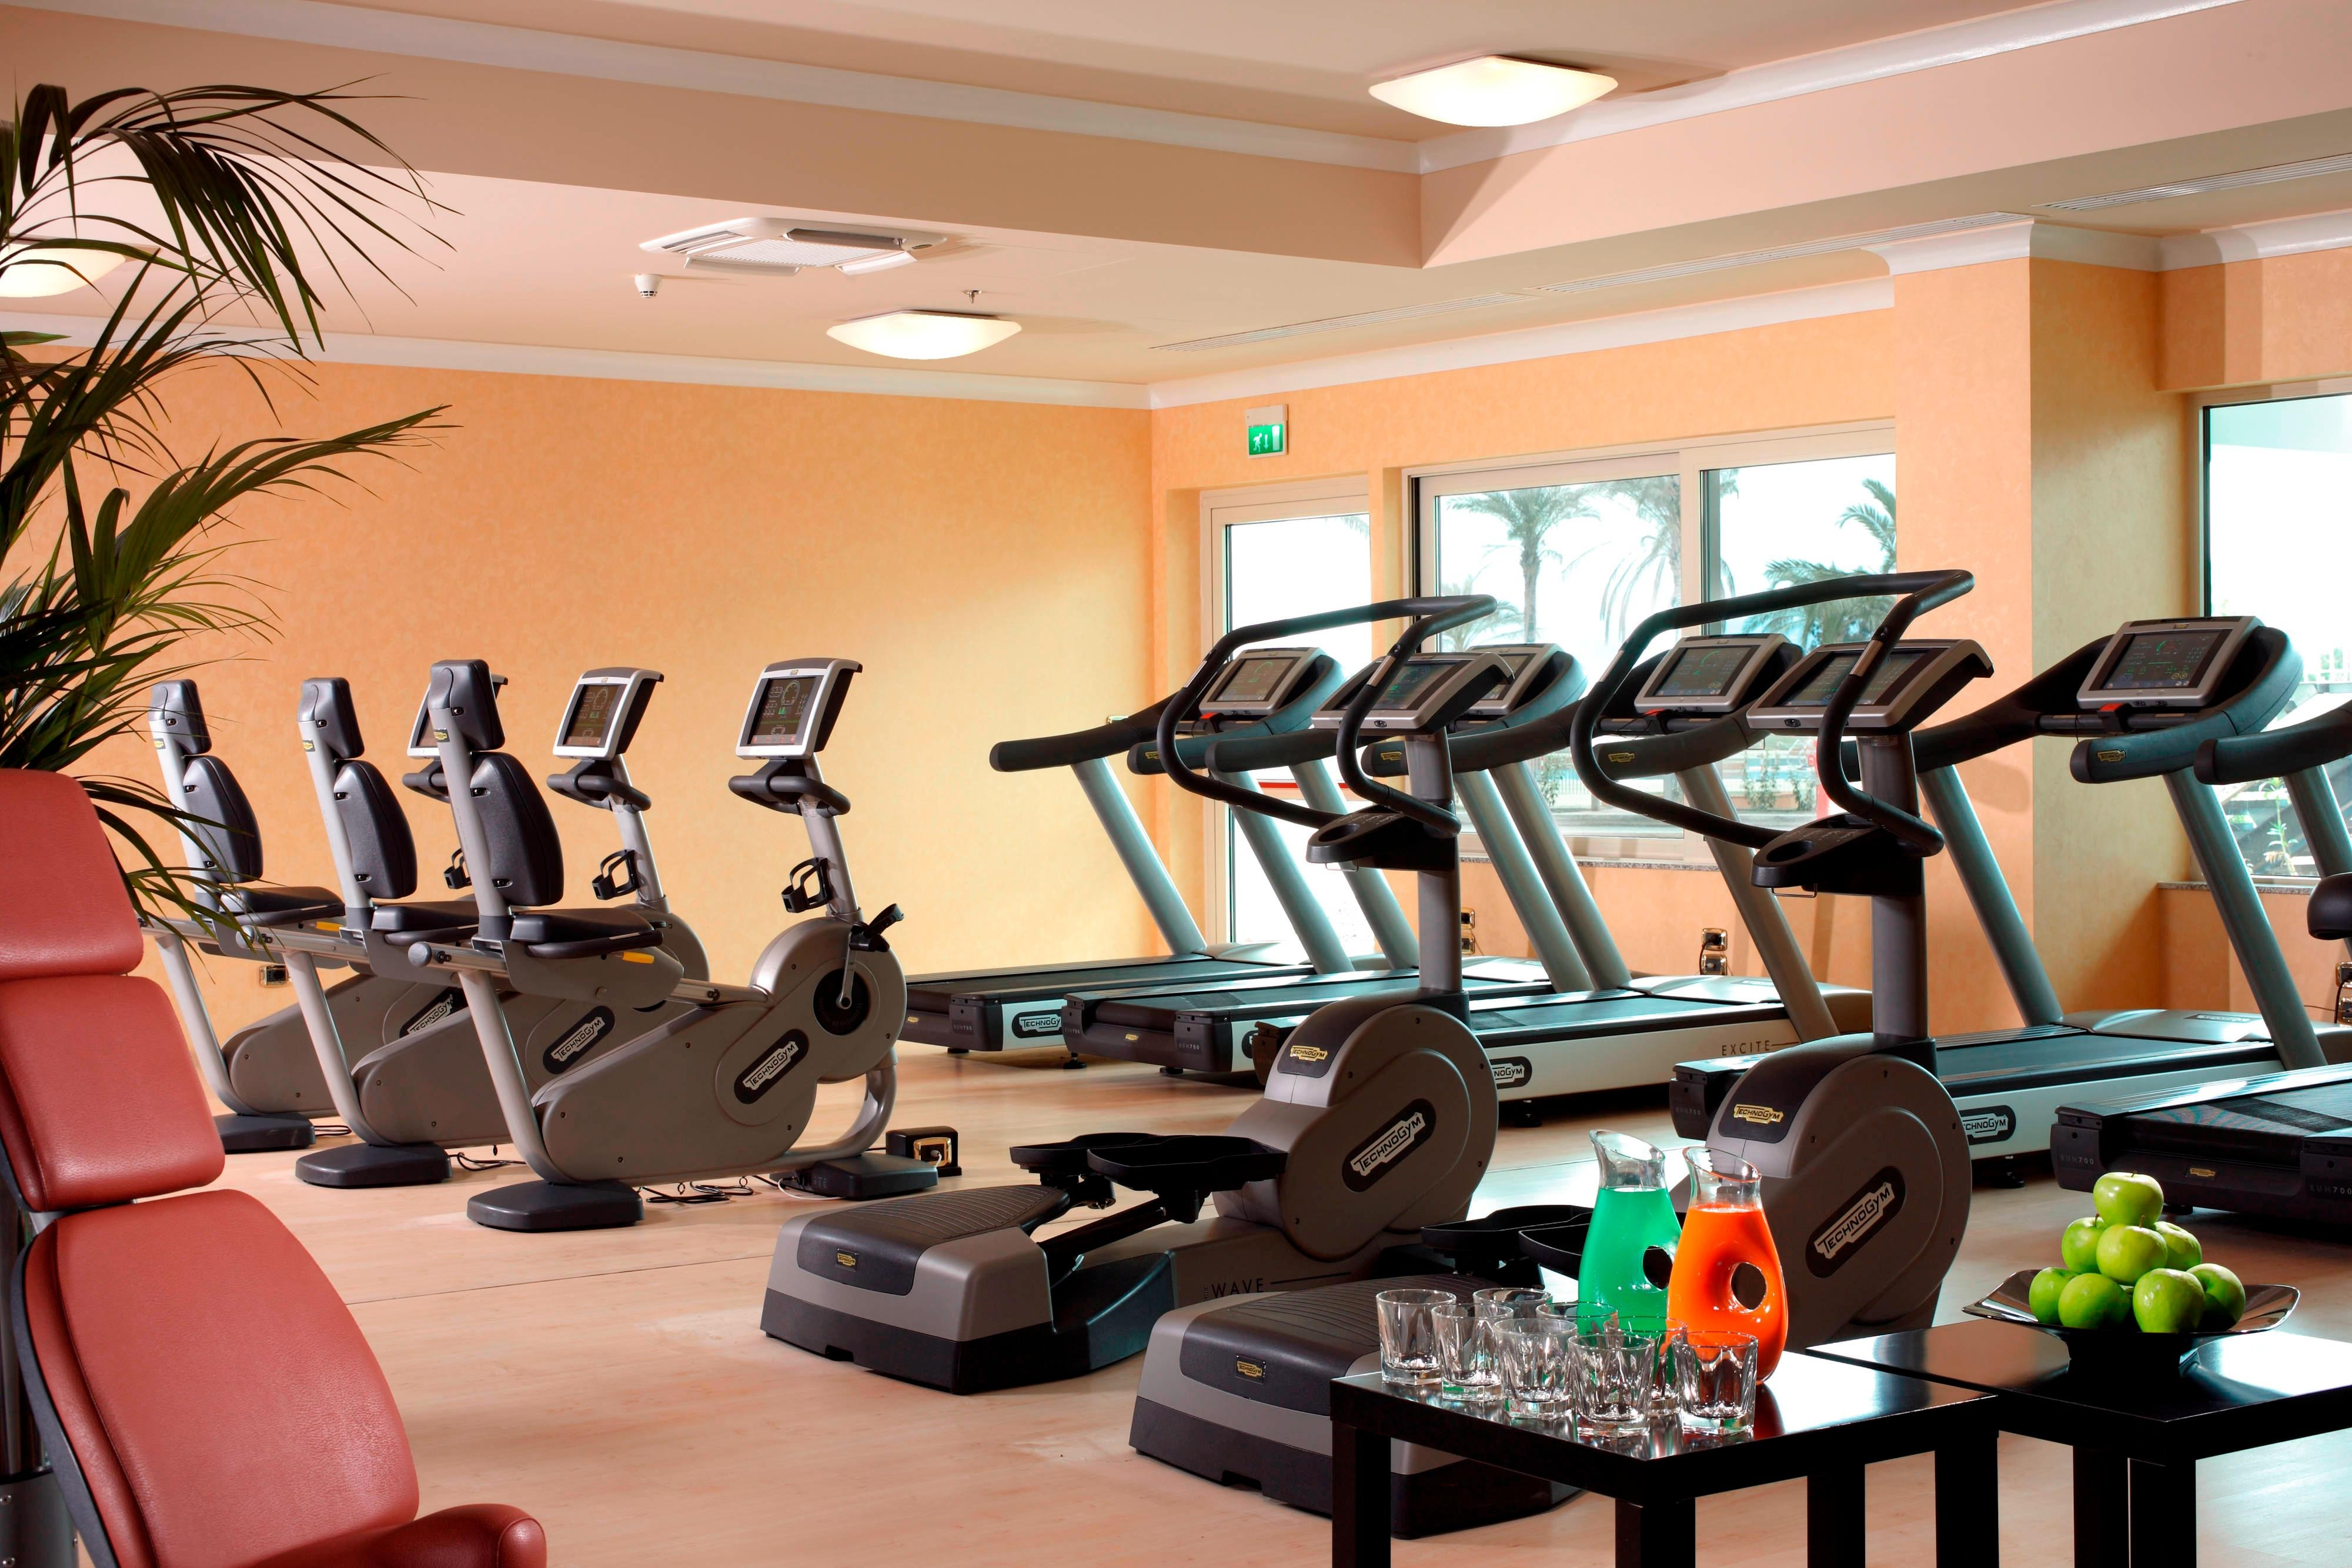 Rome hotel with fitness center